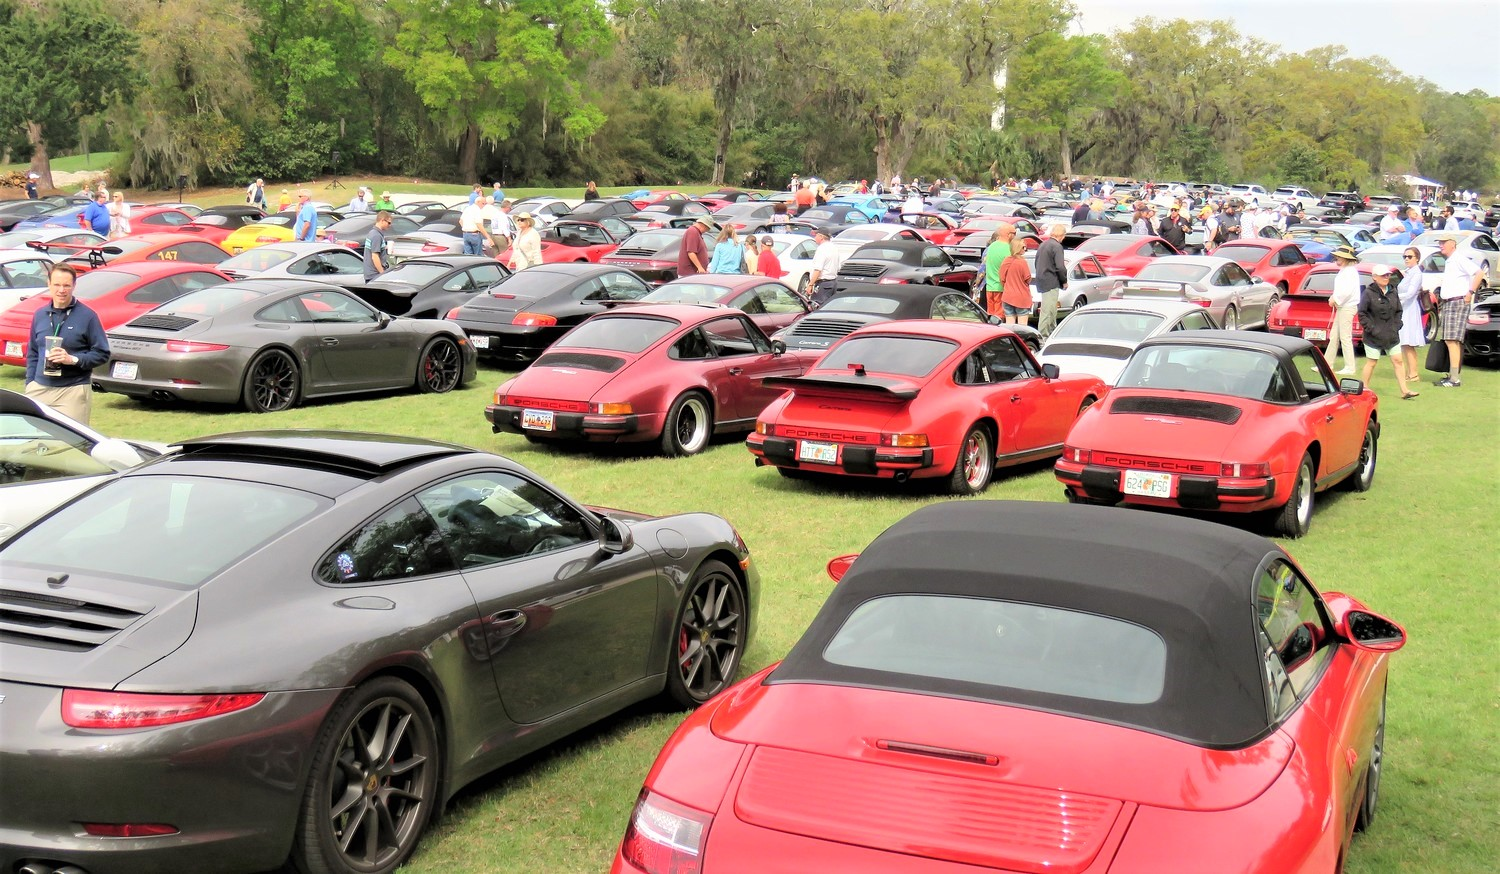 A sea of Porsches greeted fans and spectators to the Werks Reunion | Bob Golfen photos